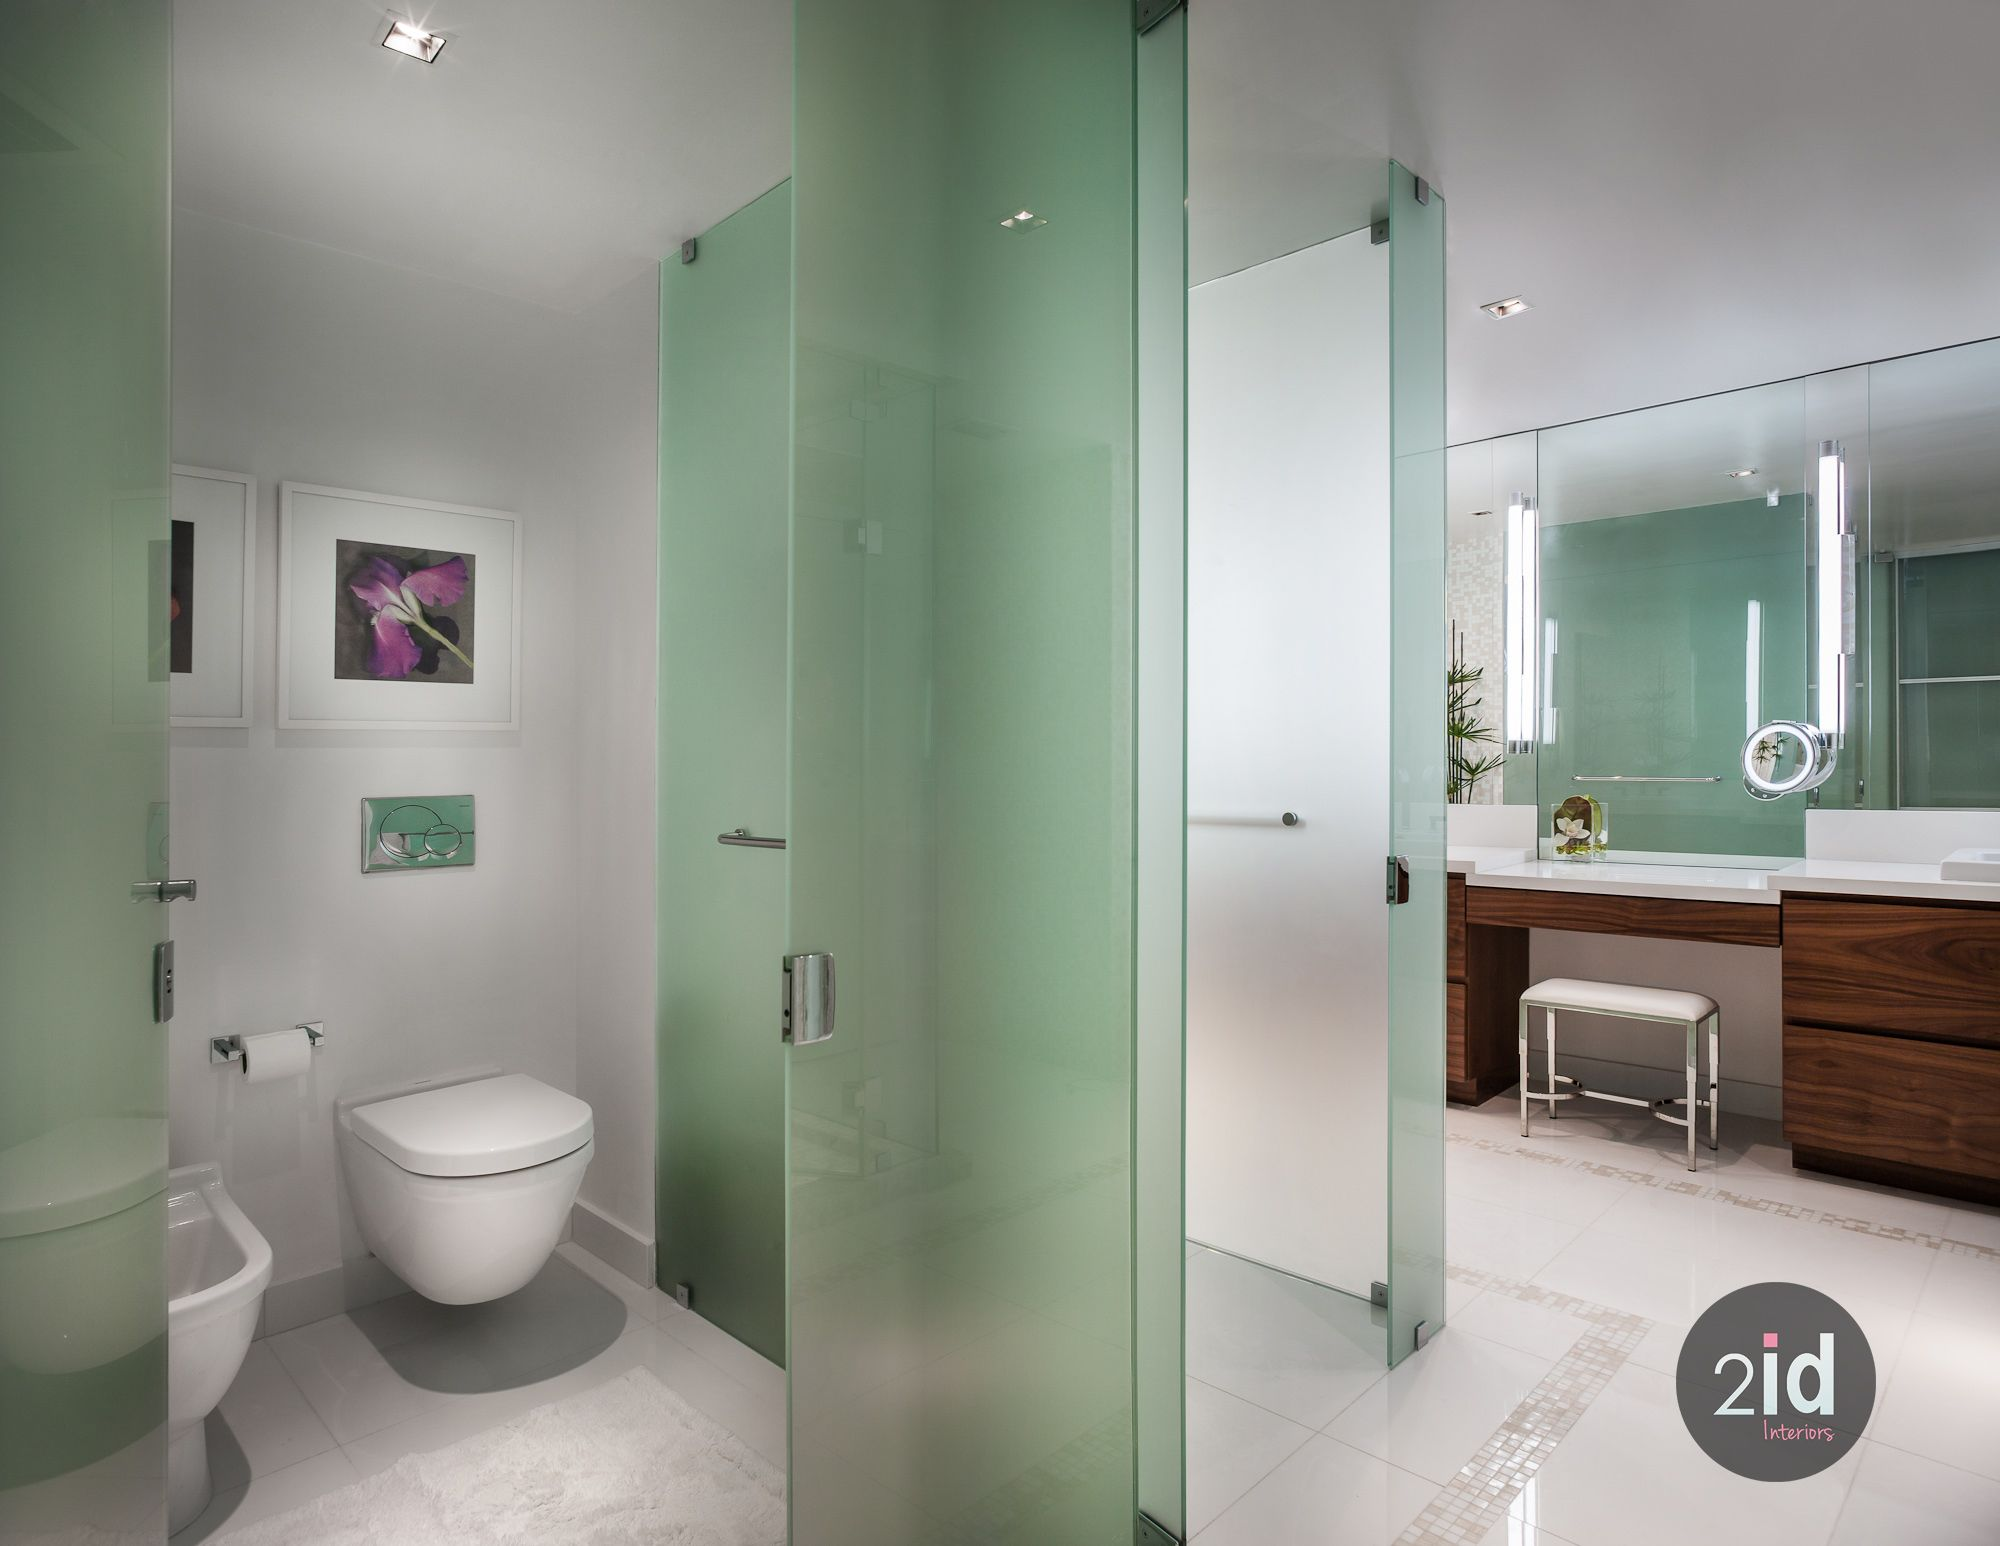 Master Bathroom Enclosed Toilet most beautiful master bathroom with frosted glass enclosed toilets